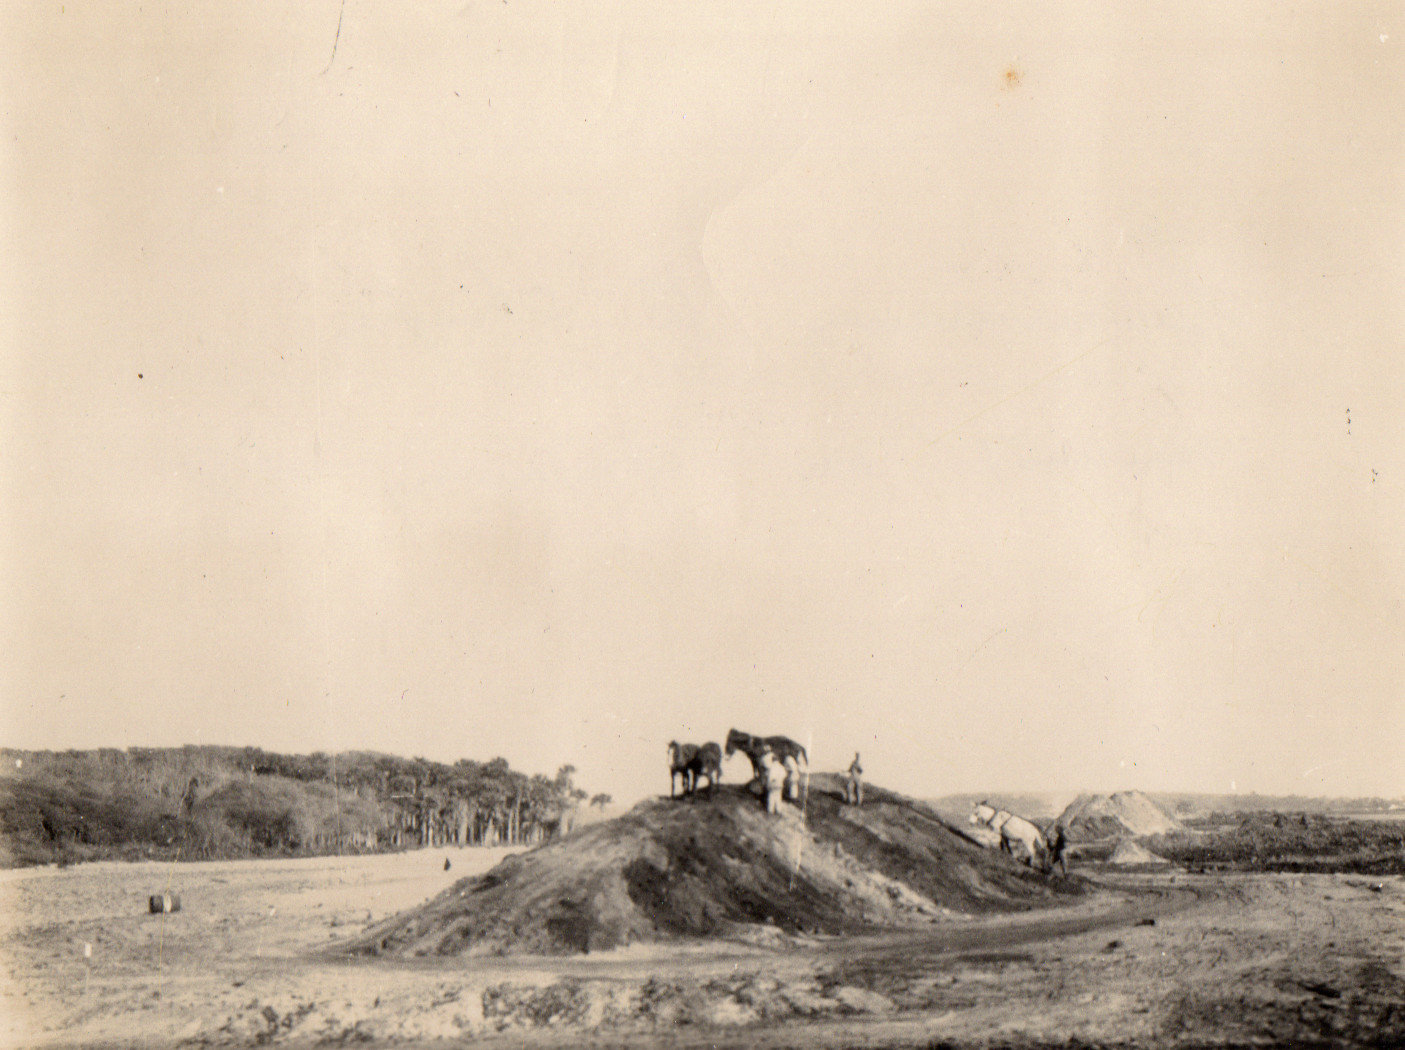 Construction takes place on the golf course at the Jacksonville Beach Golf Links (later to become the Ponte Vedra Inn & Club) in the late 1920s.